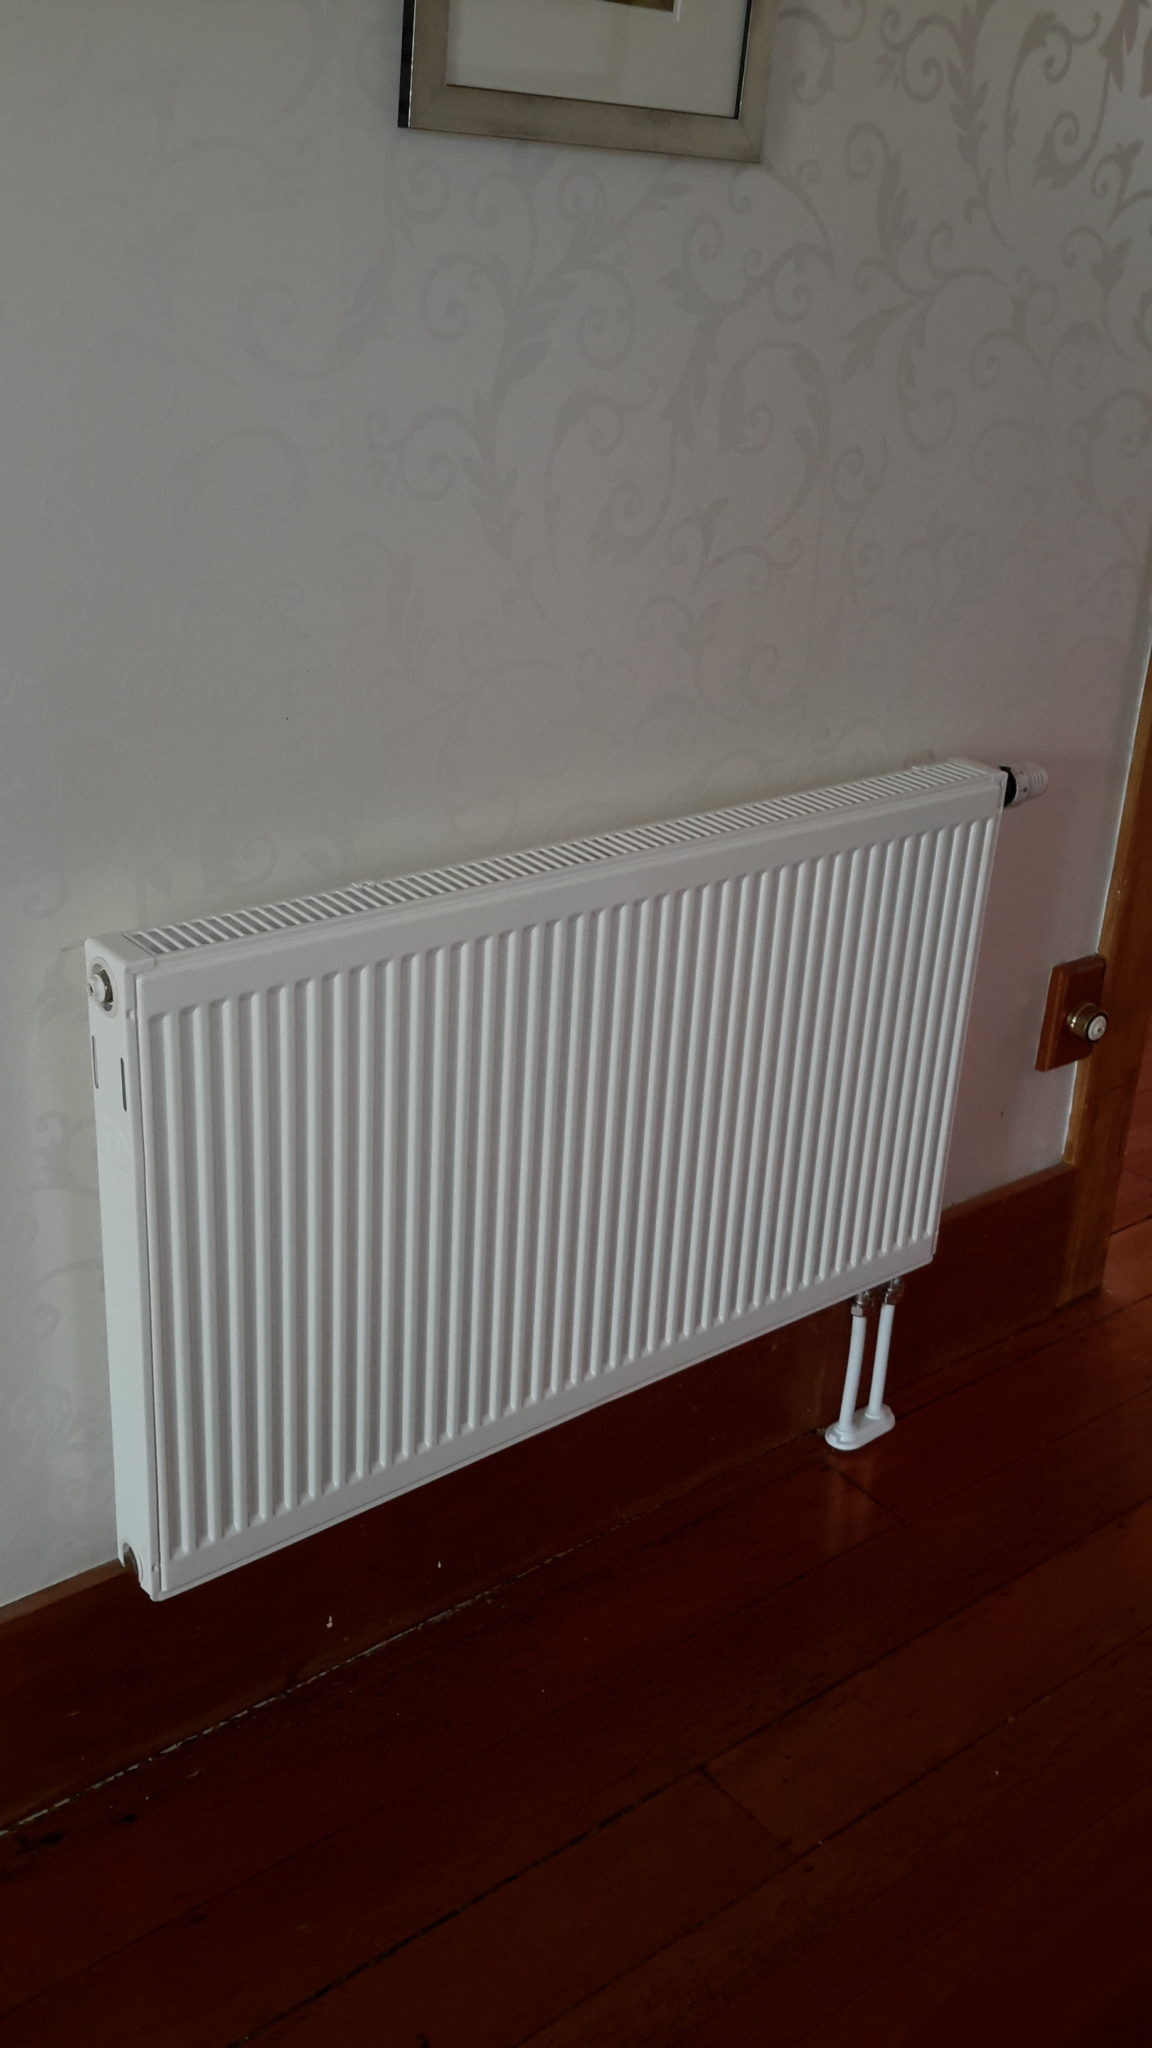 Old fashioned radiator style heaters Seasonal Holiday Items Gifts Improvements